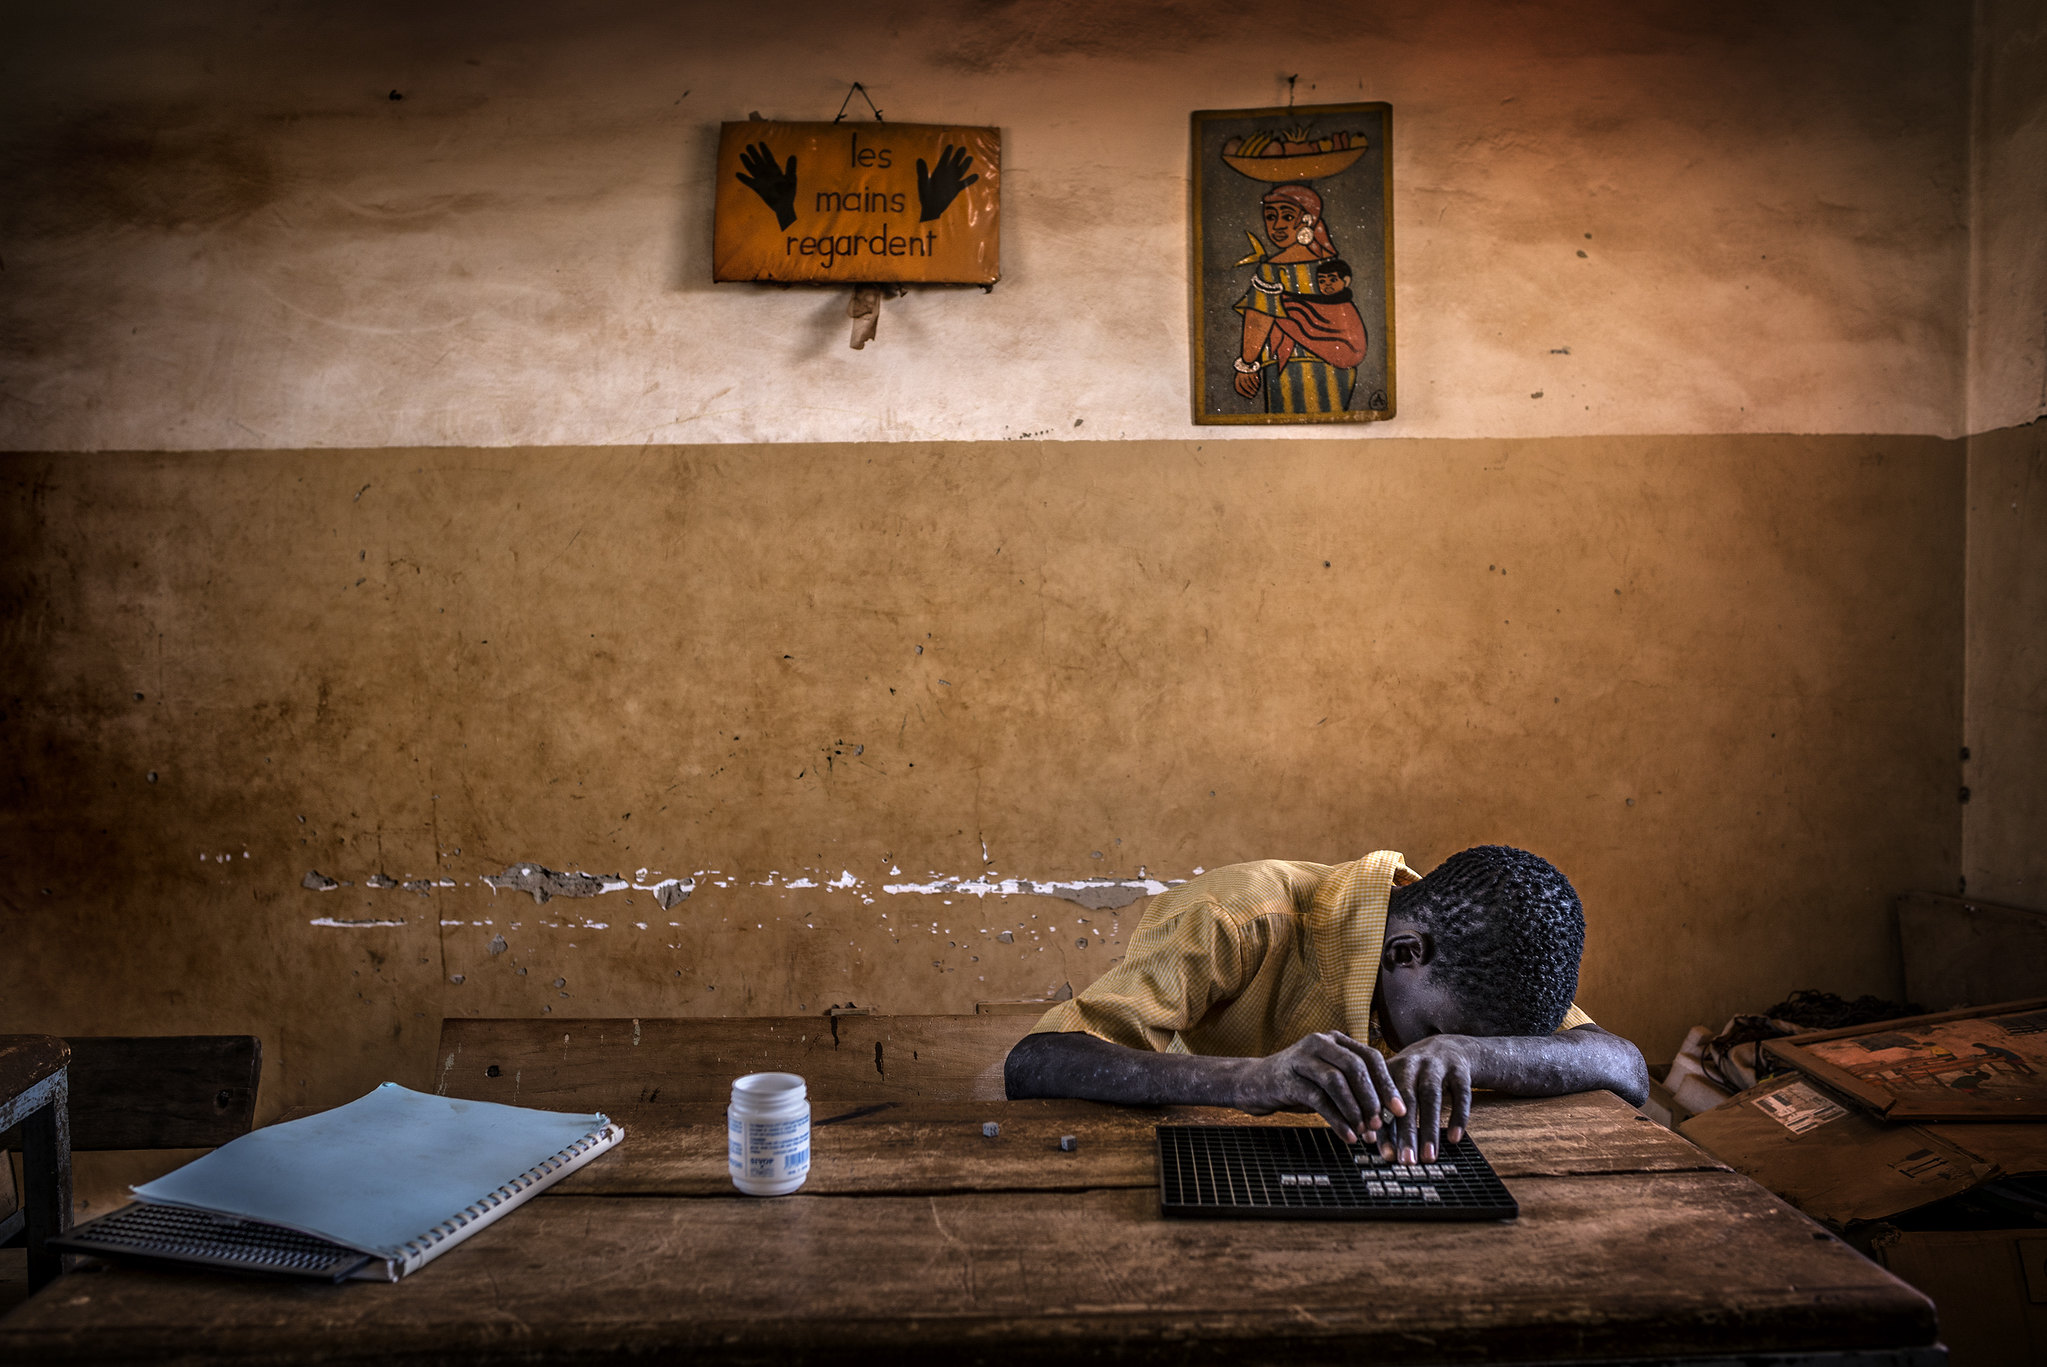 A blind boy does his homework at a very humble school for blind children outside Ouagadougou, Burkina Faso (West Africa). The Hands Look (Les Mains Regardent) for those who want to see and learn. The craving for knowledge knows no bounds. The passion for  Submitted by: Antonio Aragon Renuncio